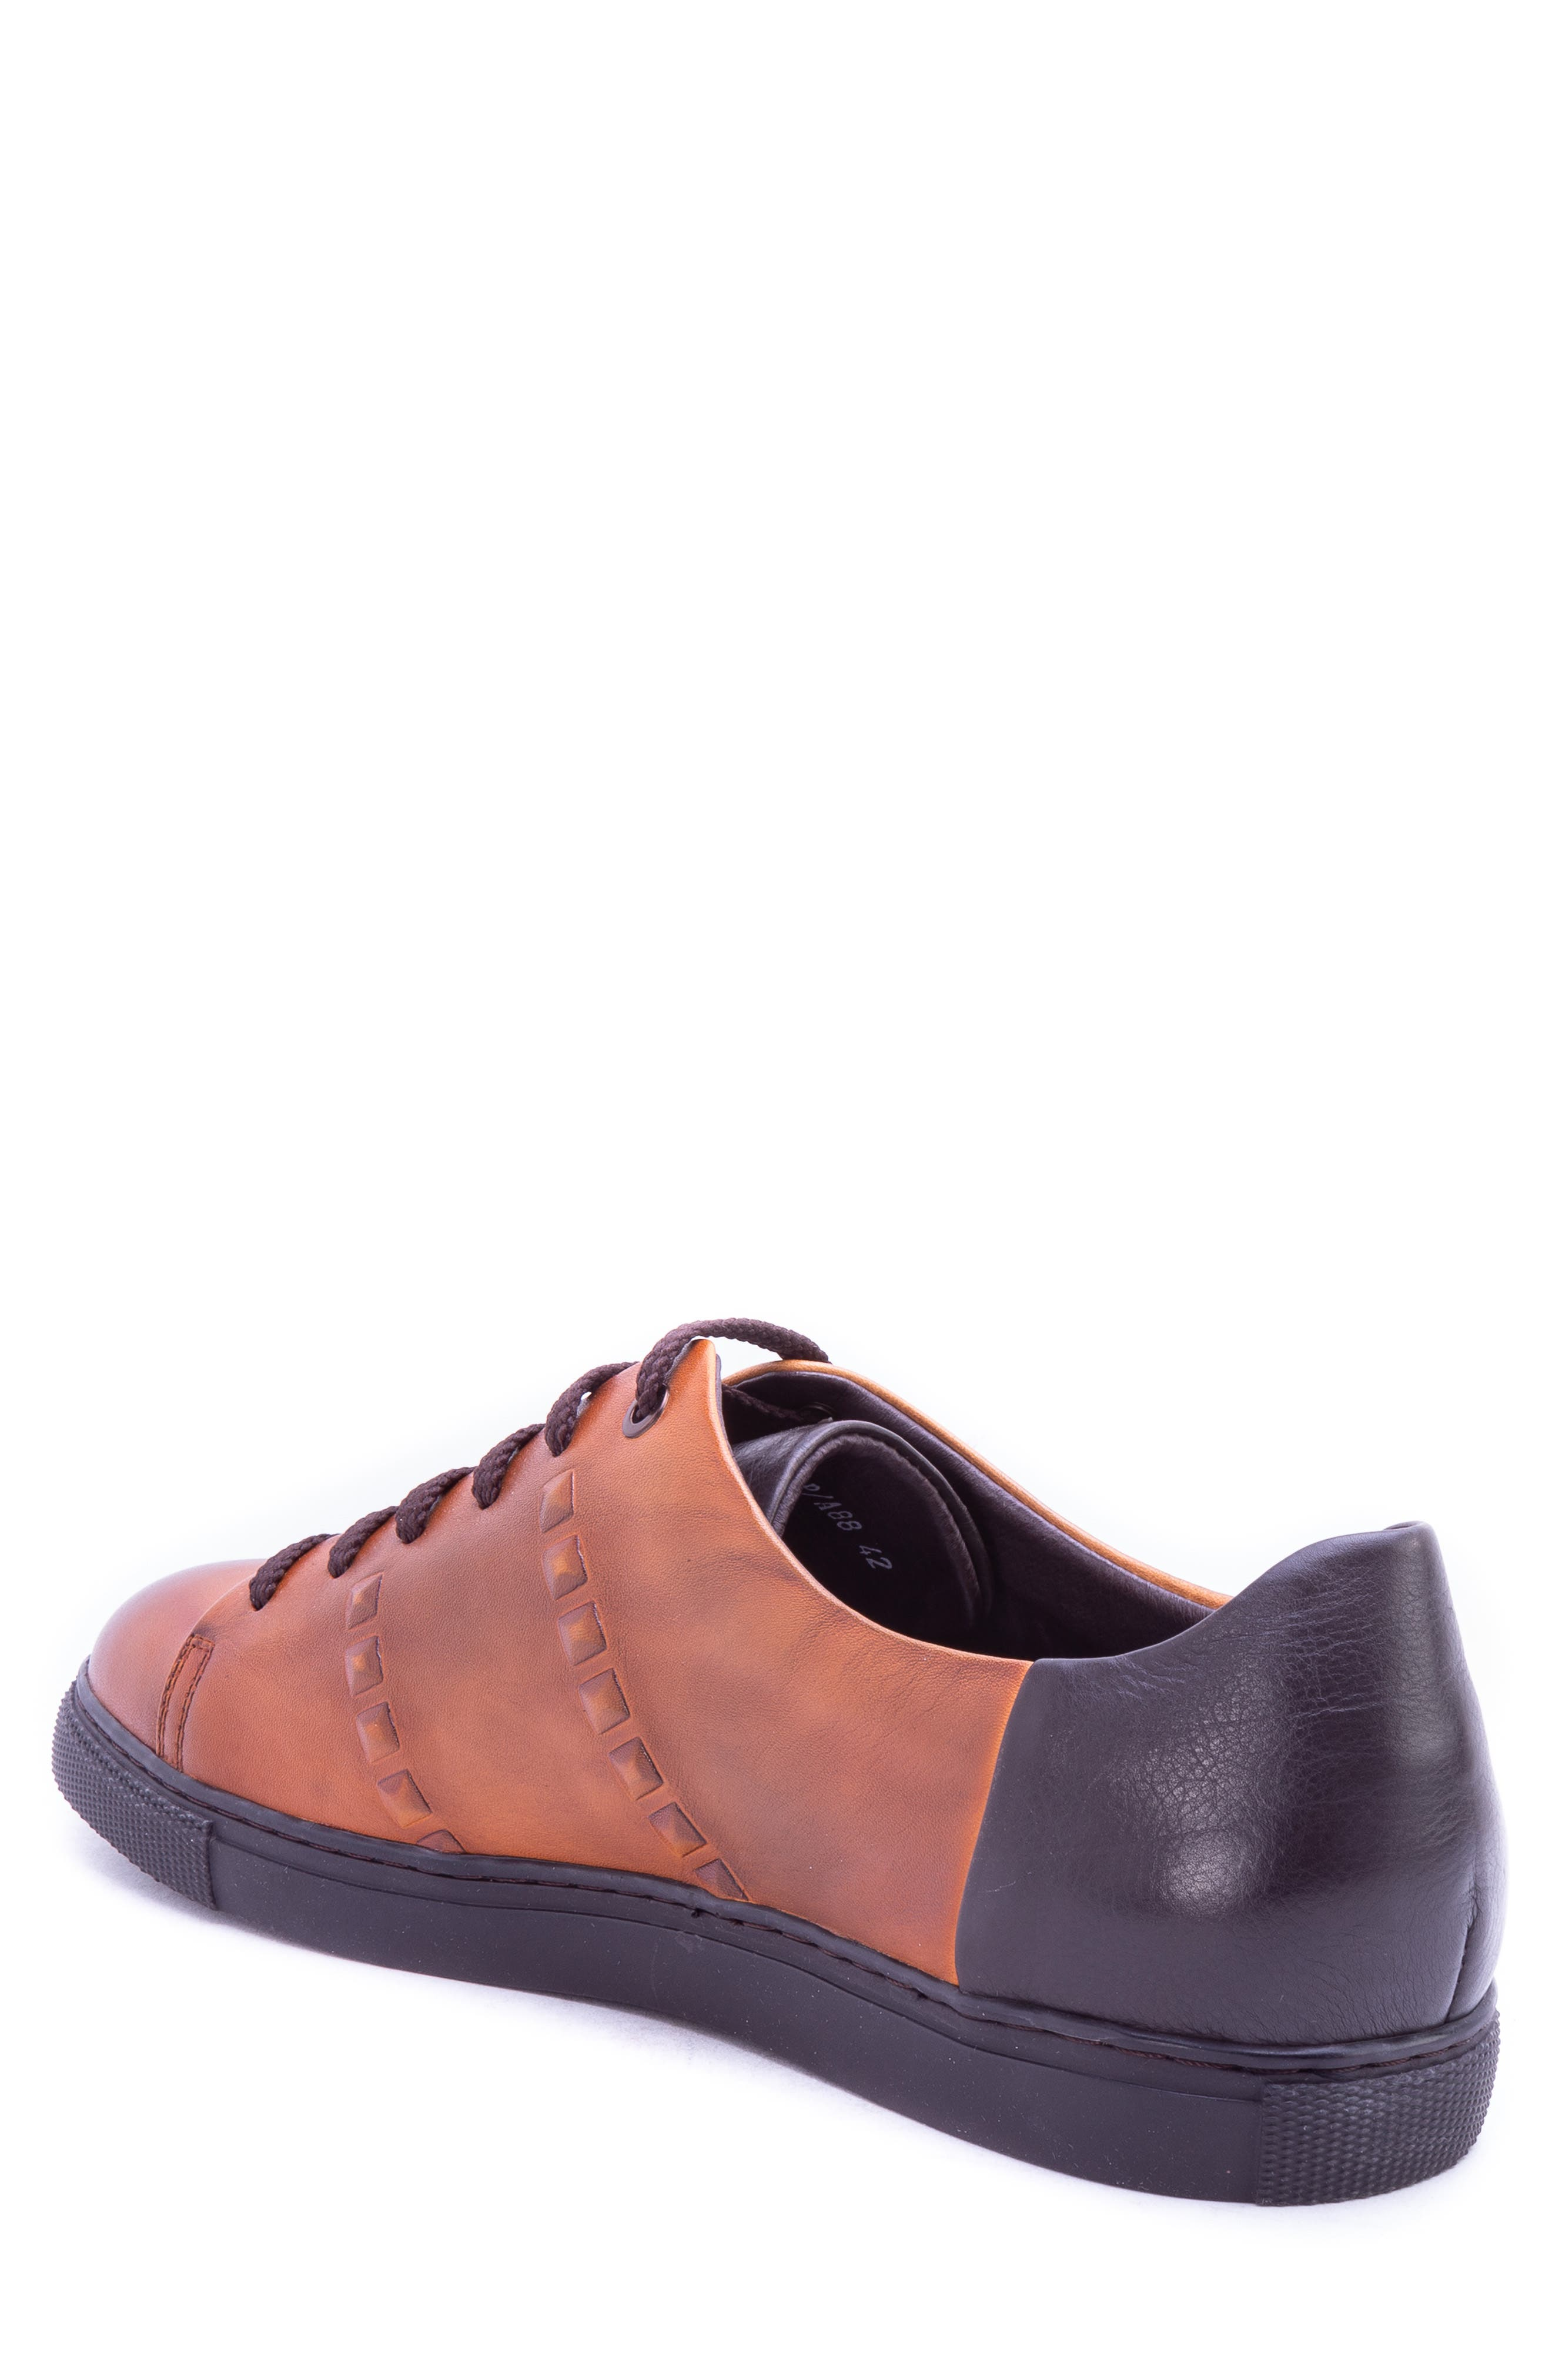 Strozzi Studded Sneaker,                             Alternate thumbnail 2, color,                             COGNAC LEATHER